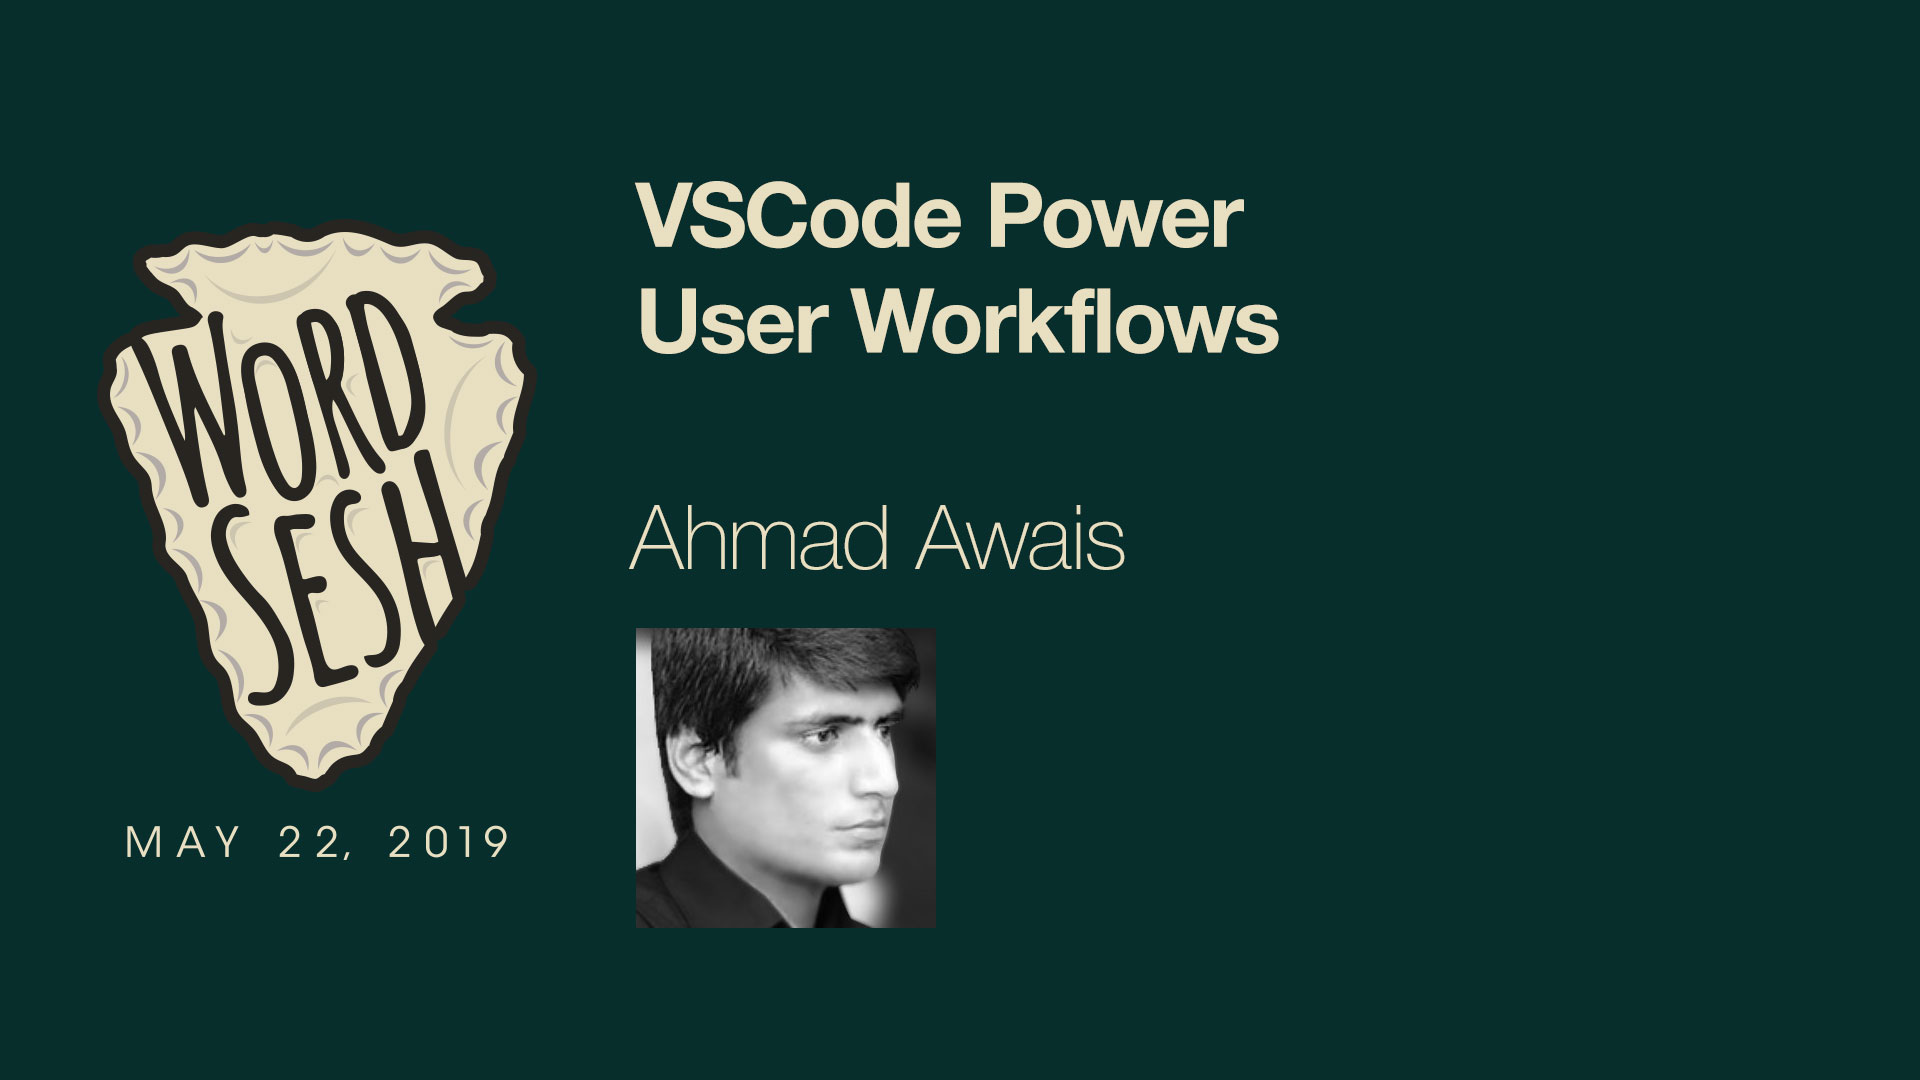 08-WordSesh-VSCode-Power-User-Workflows-Ahmad-Awais